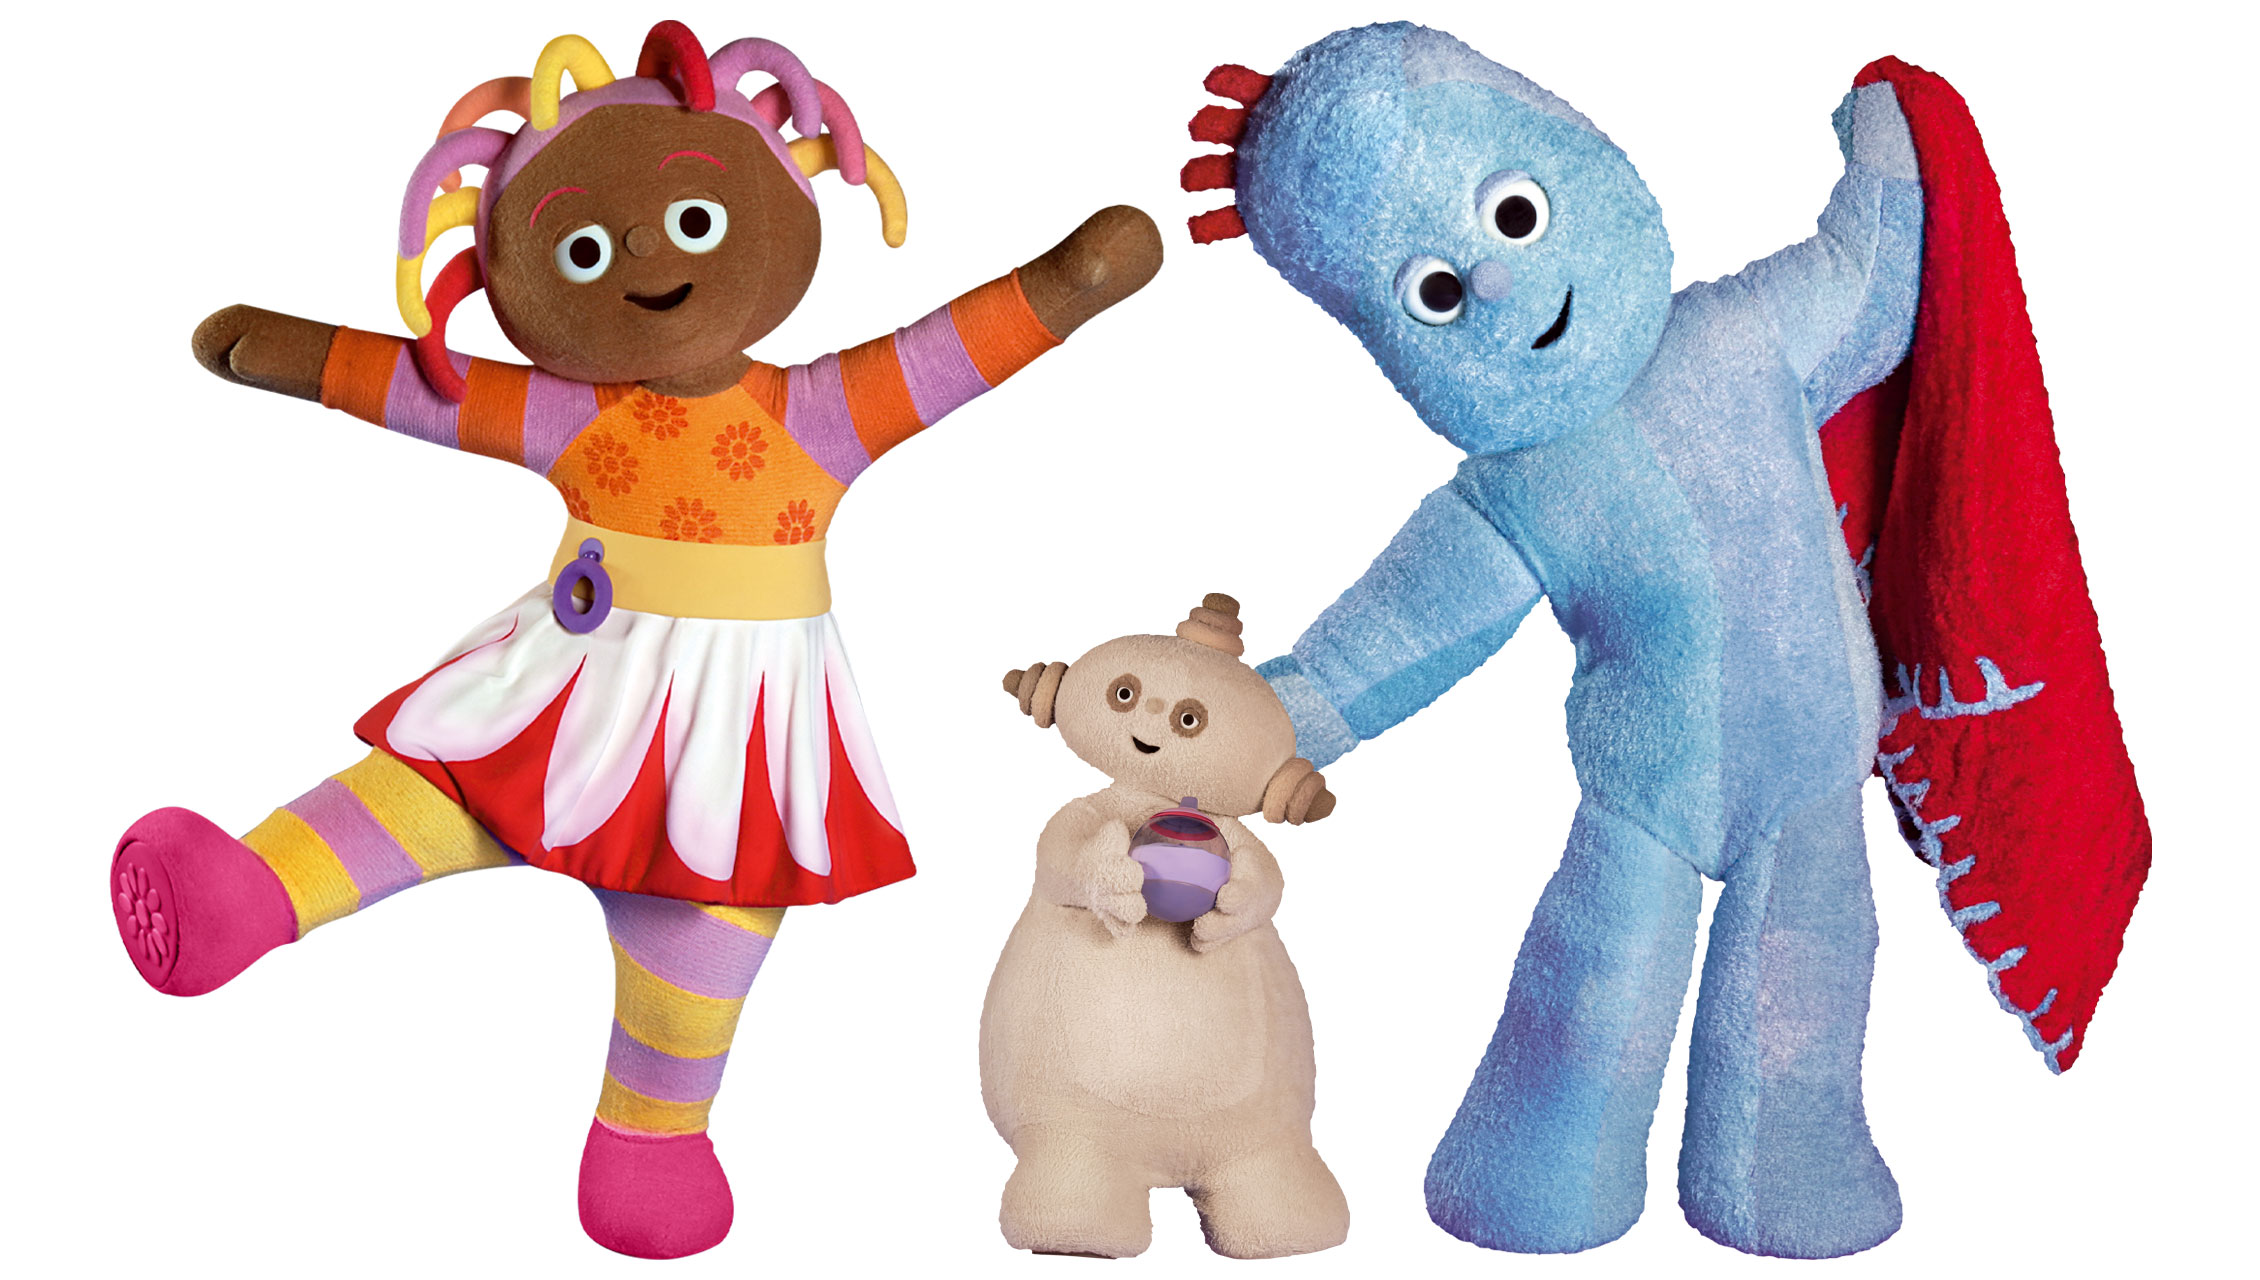 a female in a striped shirt and skirt, a blue creature with blanket and a little beige creature